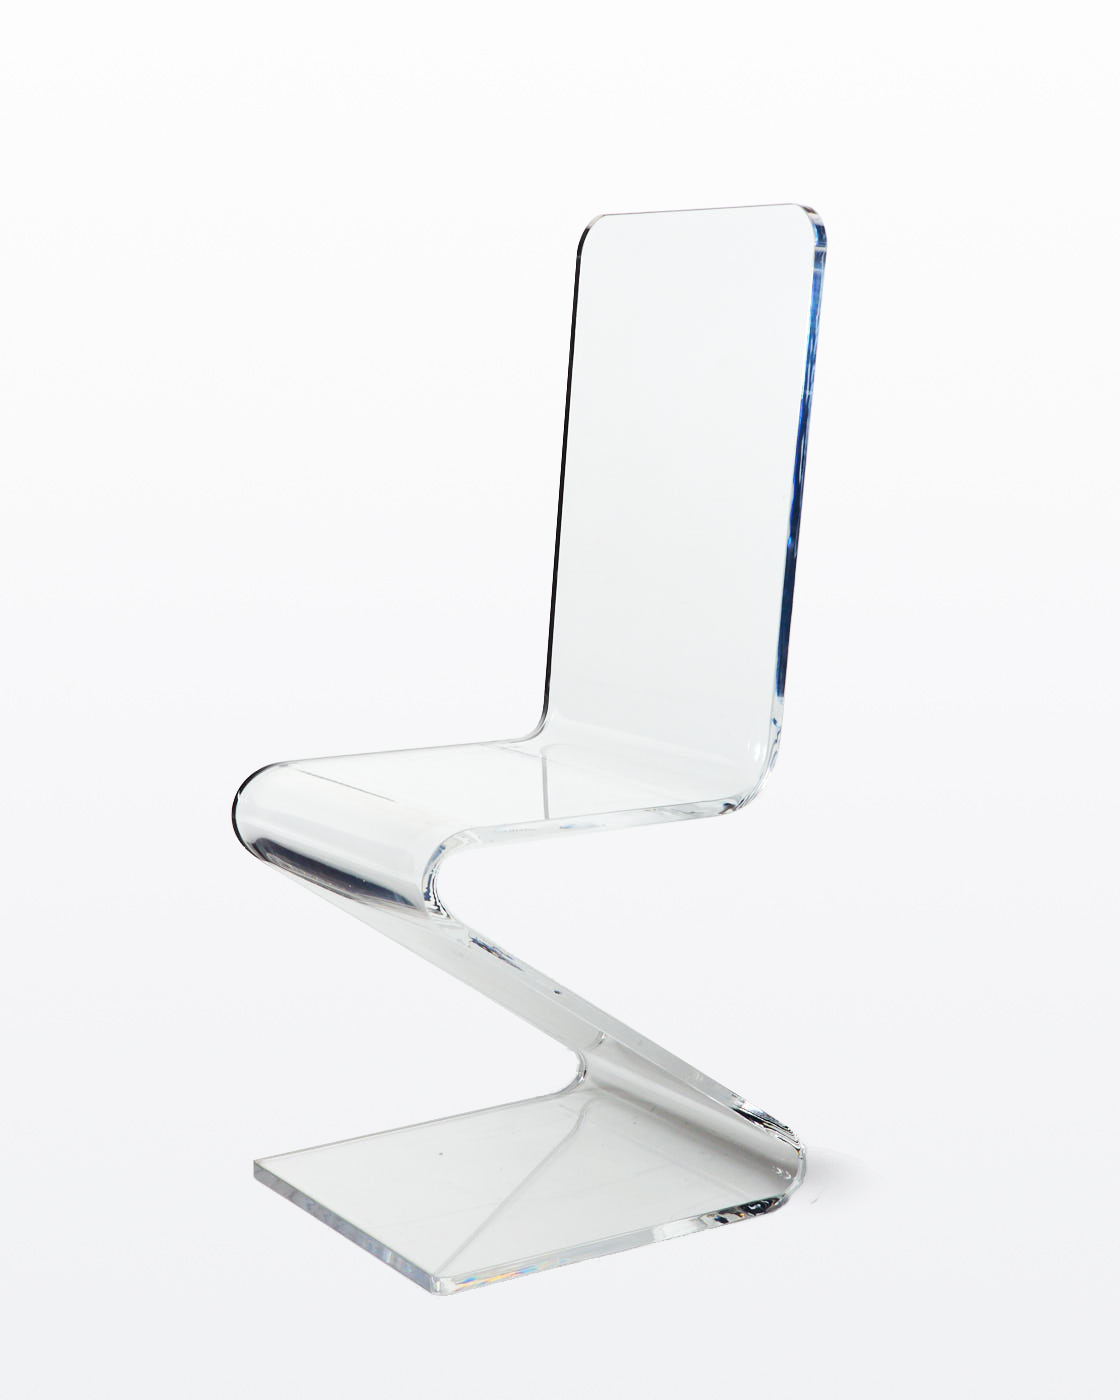 Plexiglass Chairs Ch239 Curve Acrylic Chair Prop Rental Acme Brooklyn